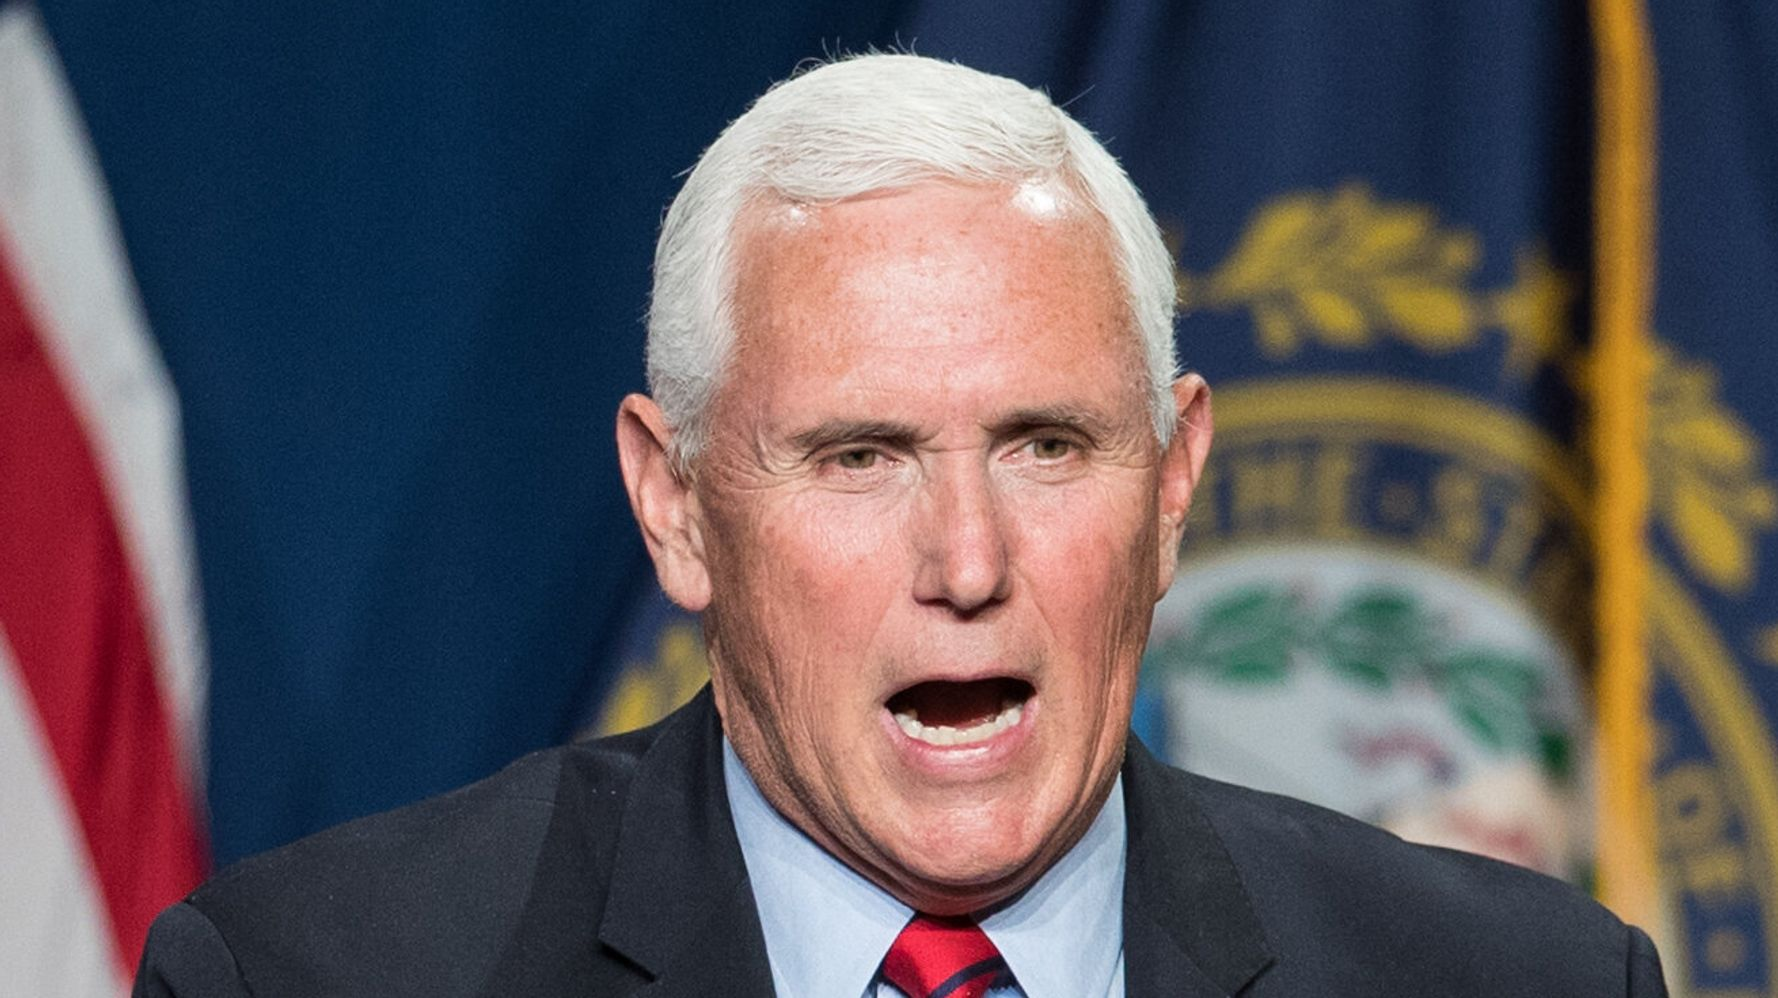 Mike Pence Privately Praised White House Official Who 'Unloaded' On Trump On Charlottesville: Book